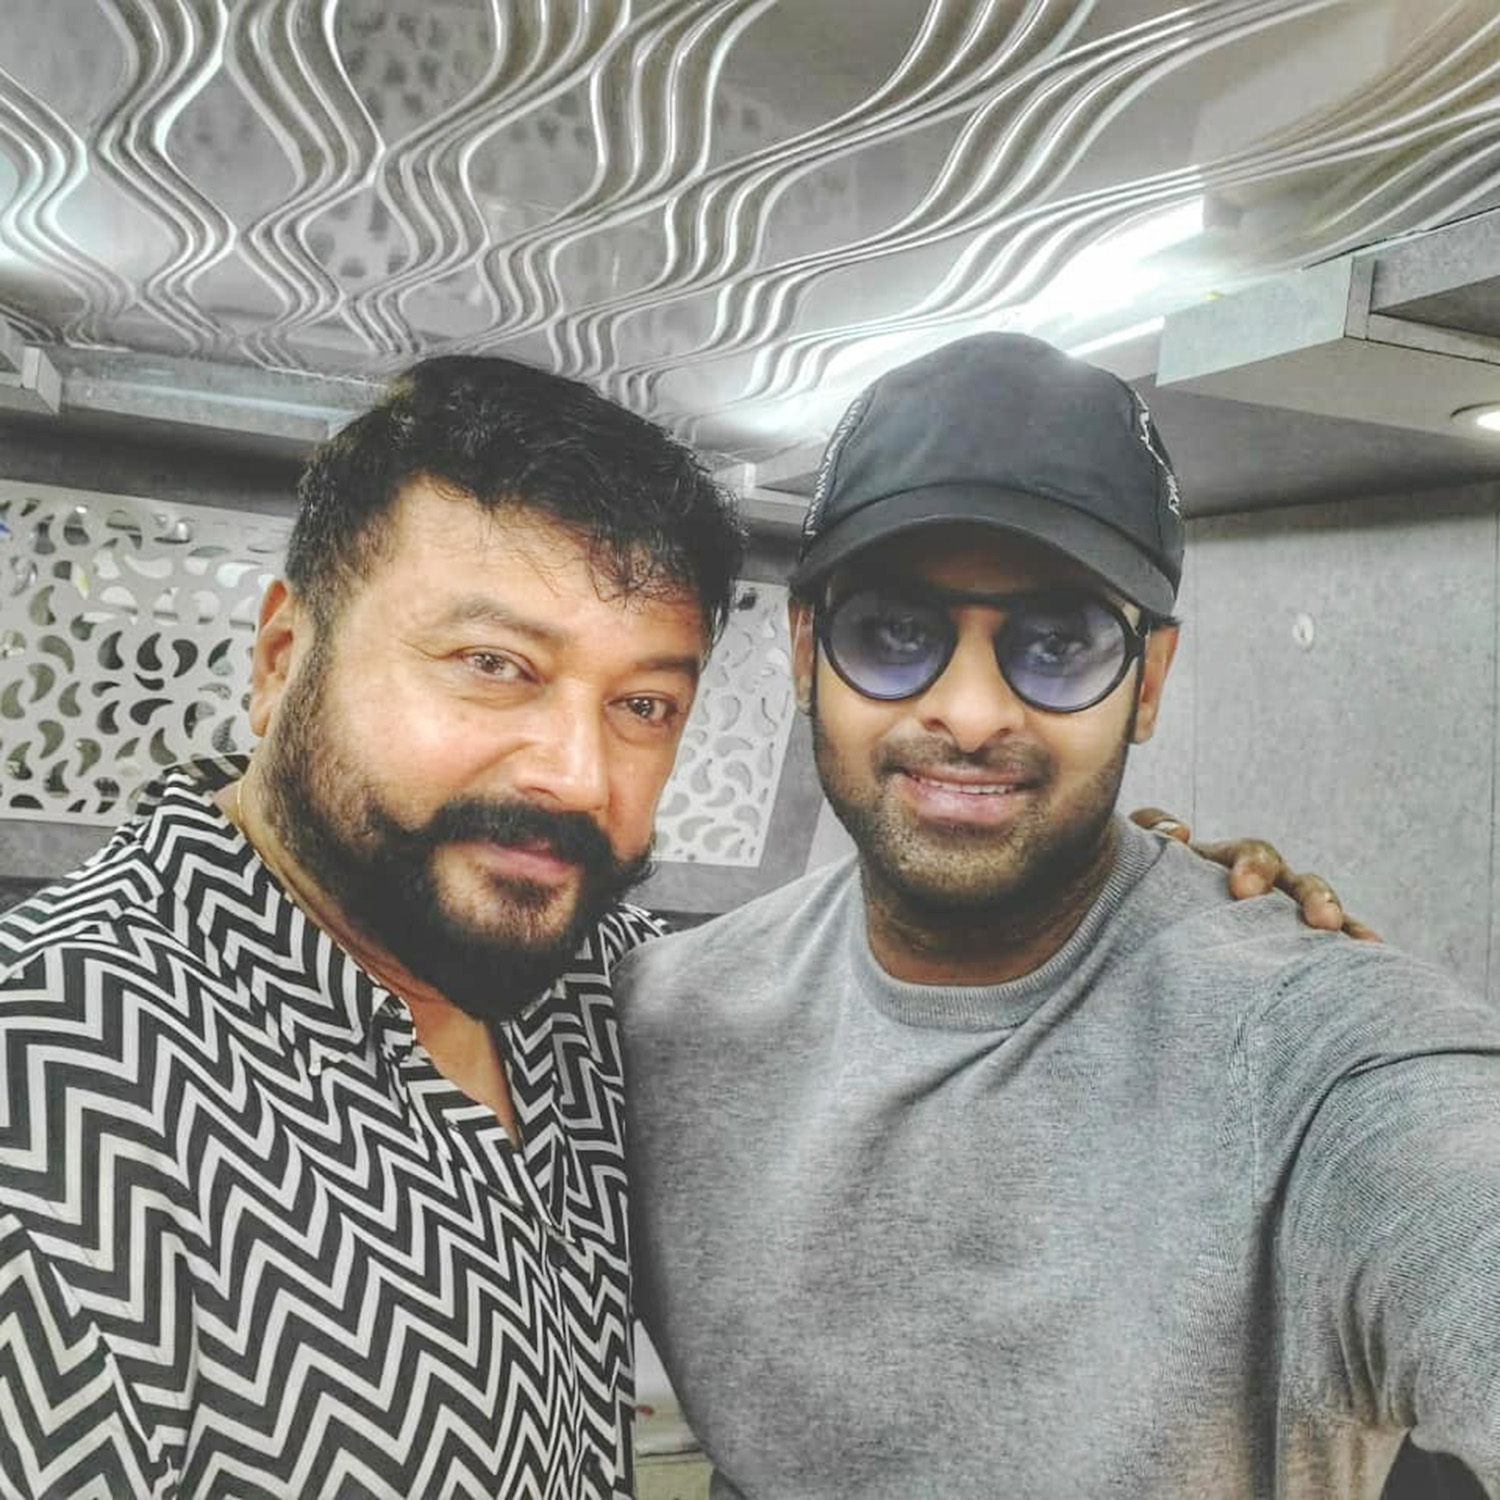 Radhe Shyam movie,actor prabhas,actor jayaram,jayaram selfie with prabhas,jayaram new telugu cinema,jayaram prabhas Radhe Shyam movie set,jayaram in prabhas new film Radhe Shyam,jayaram with prabhas,new telugu cinema,tollywood cinema,jayaram telugu cinema